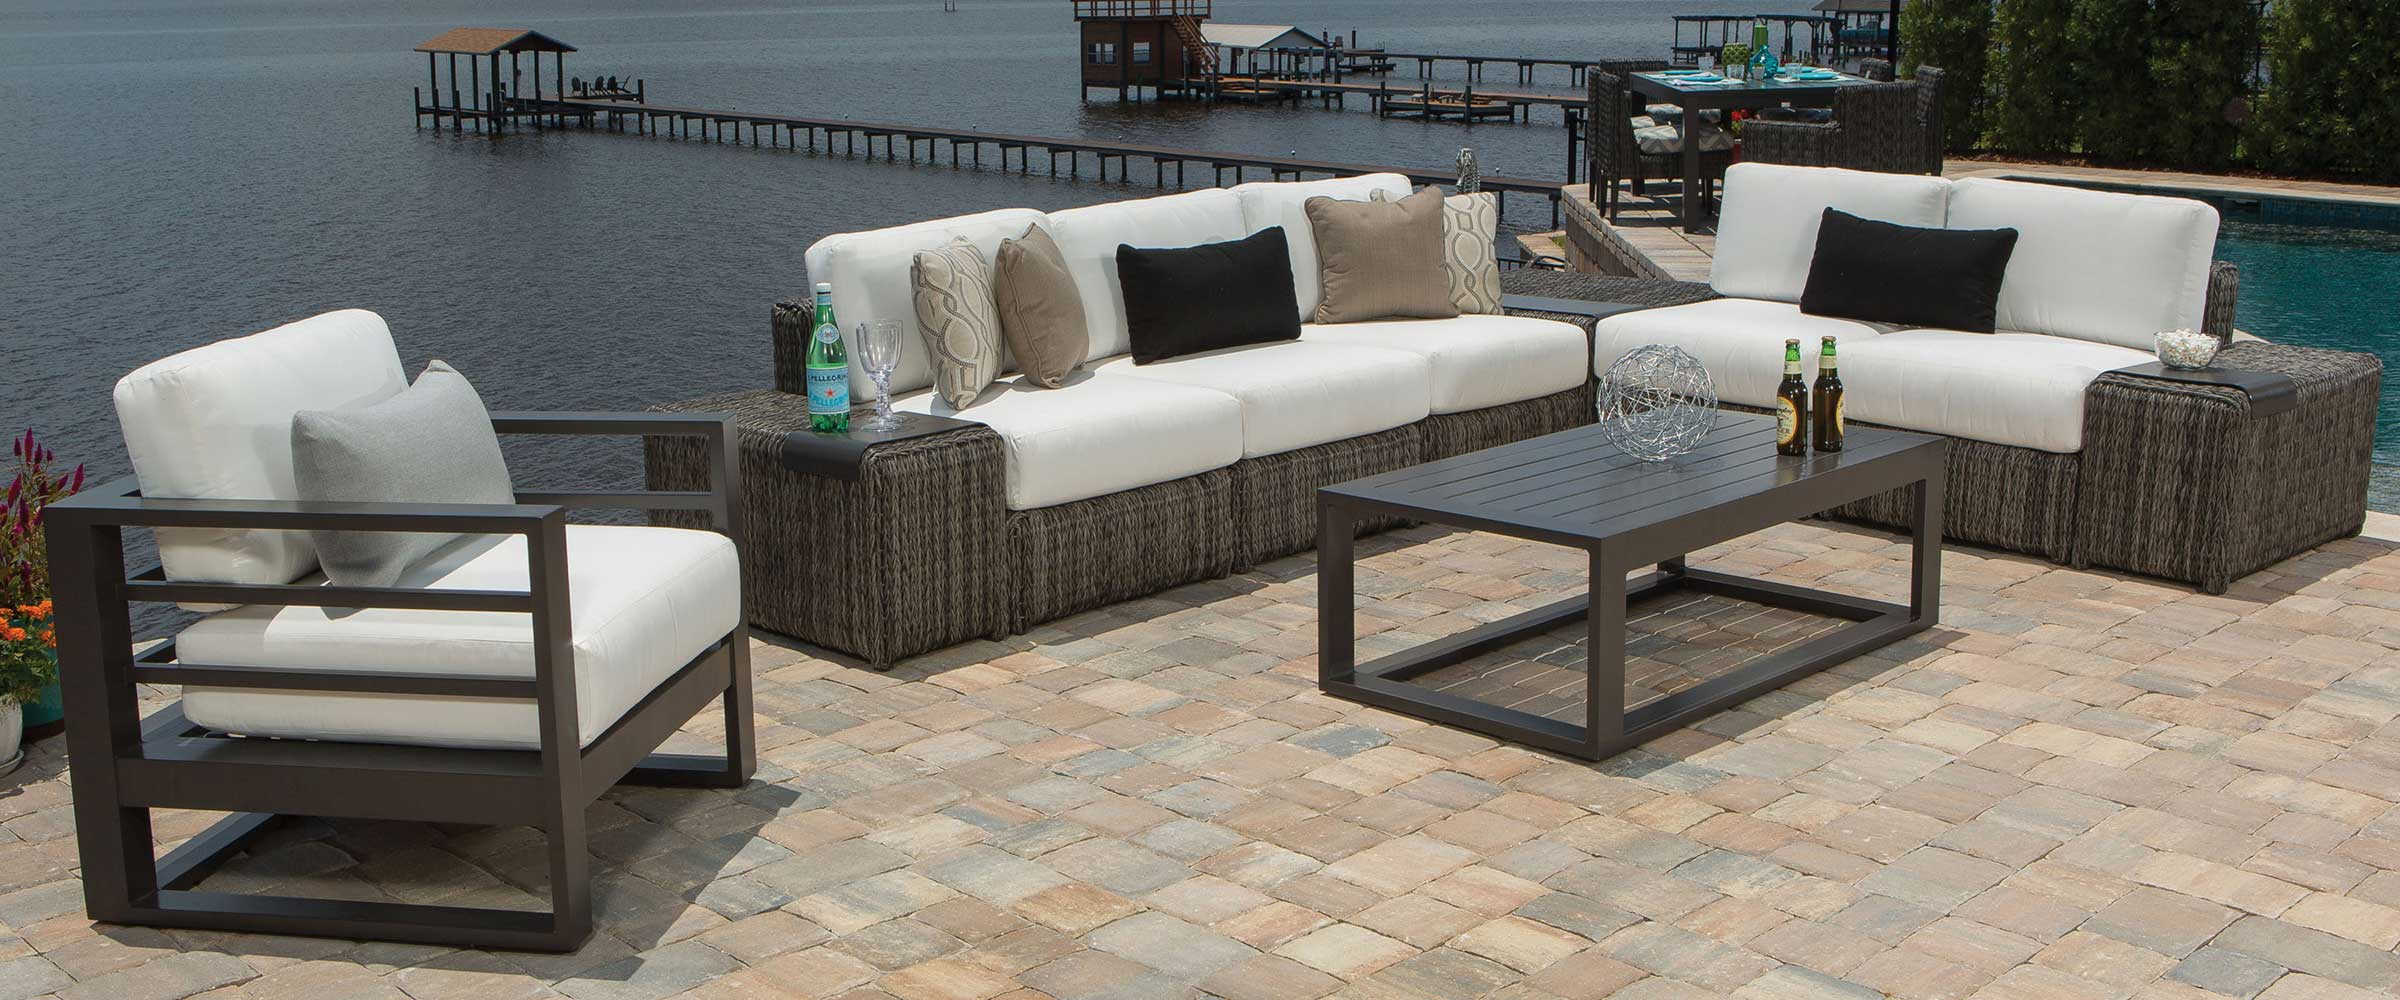 Orsay Outdoor Sectional Set by Ebel